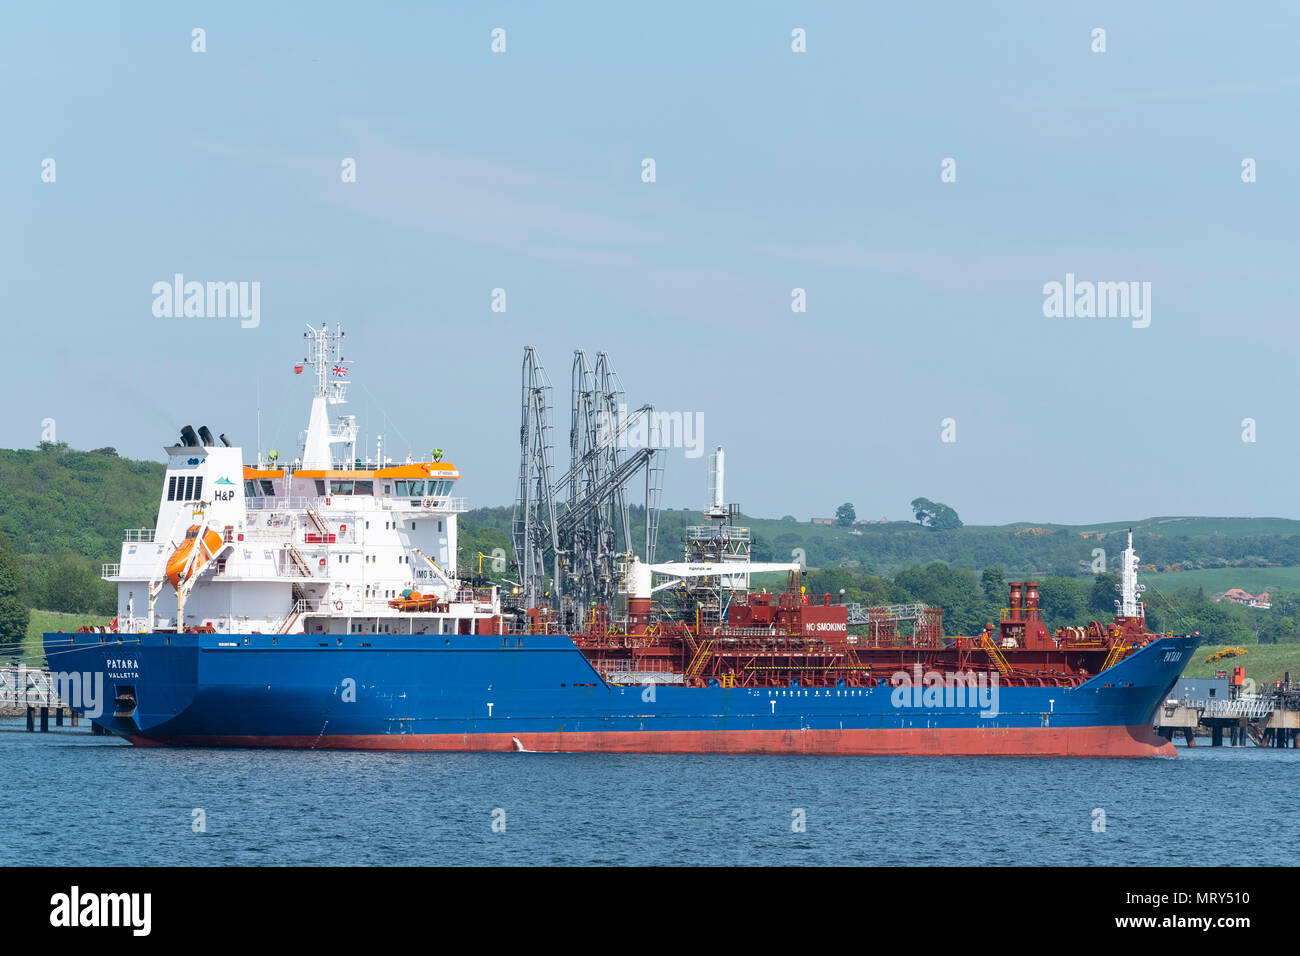 LPG tanker berthed at Braefoot Terminal in Fife, Scotland. Terminal is used for export of  liquefied petroleum gas, - Stock Image